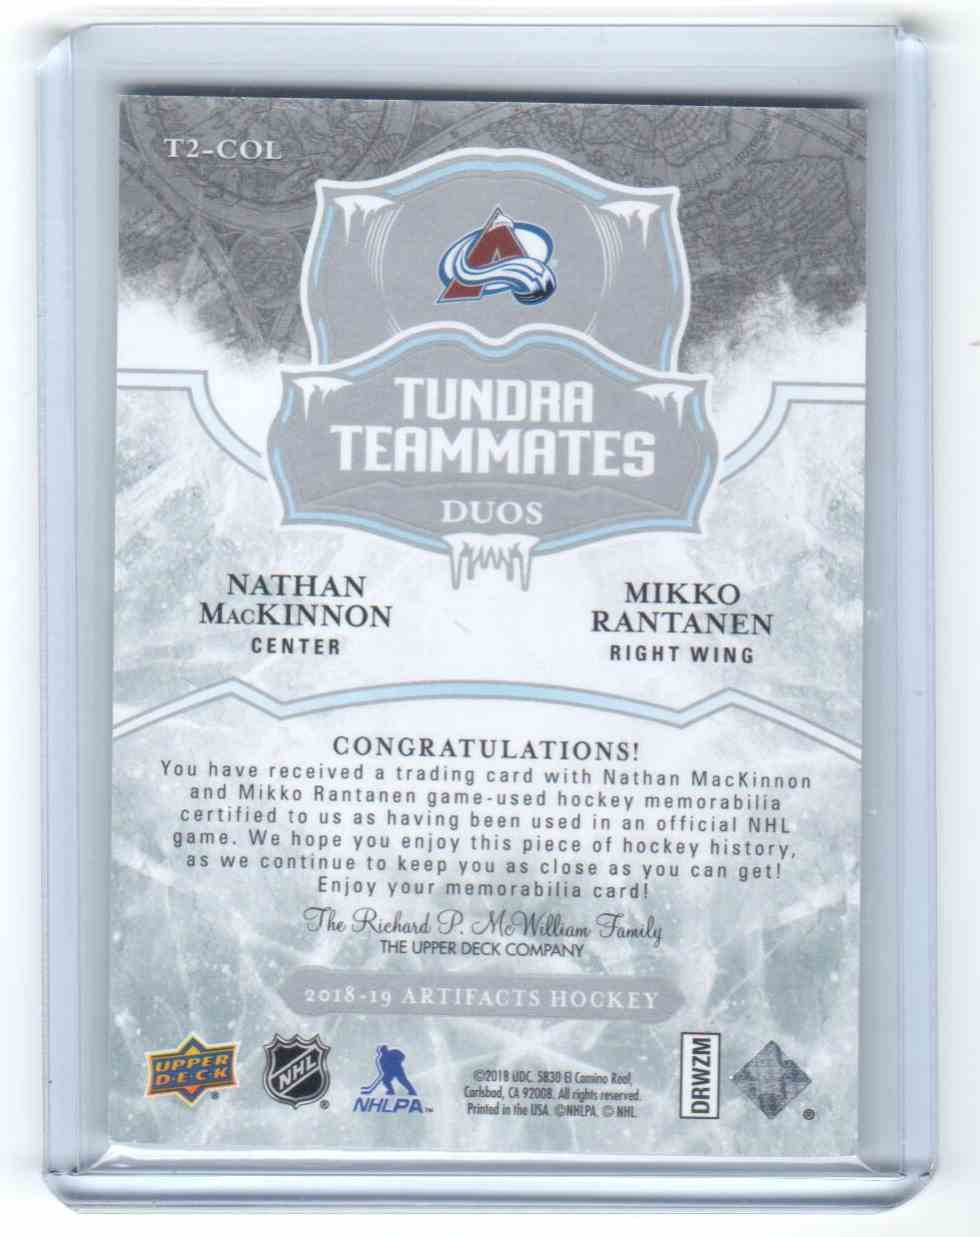 2018-19 Upper Deck Artifacts Trundra Teammates Duo Materials Nathan Mackinnon, Mikko Rantanen #T2-COL card back image